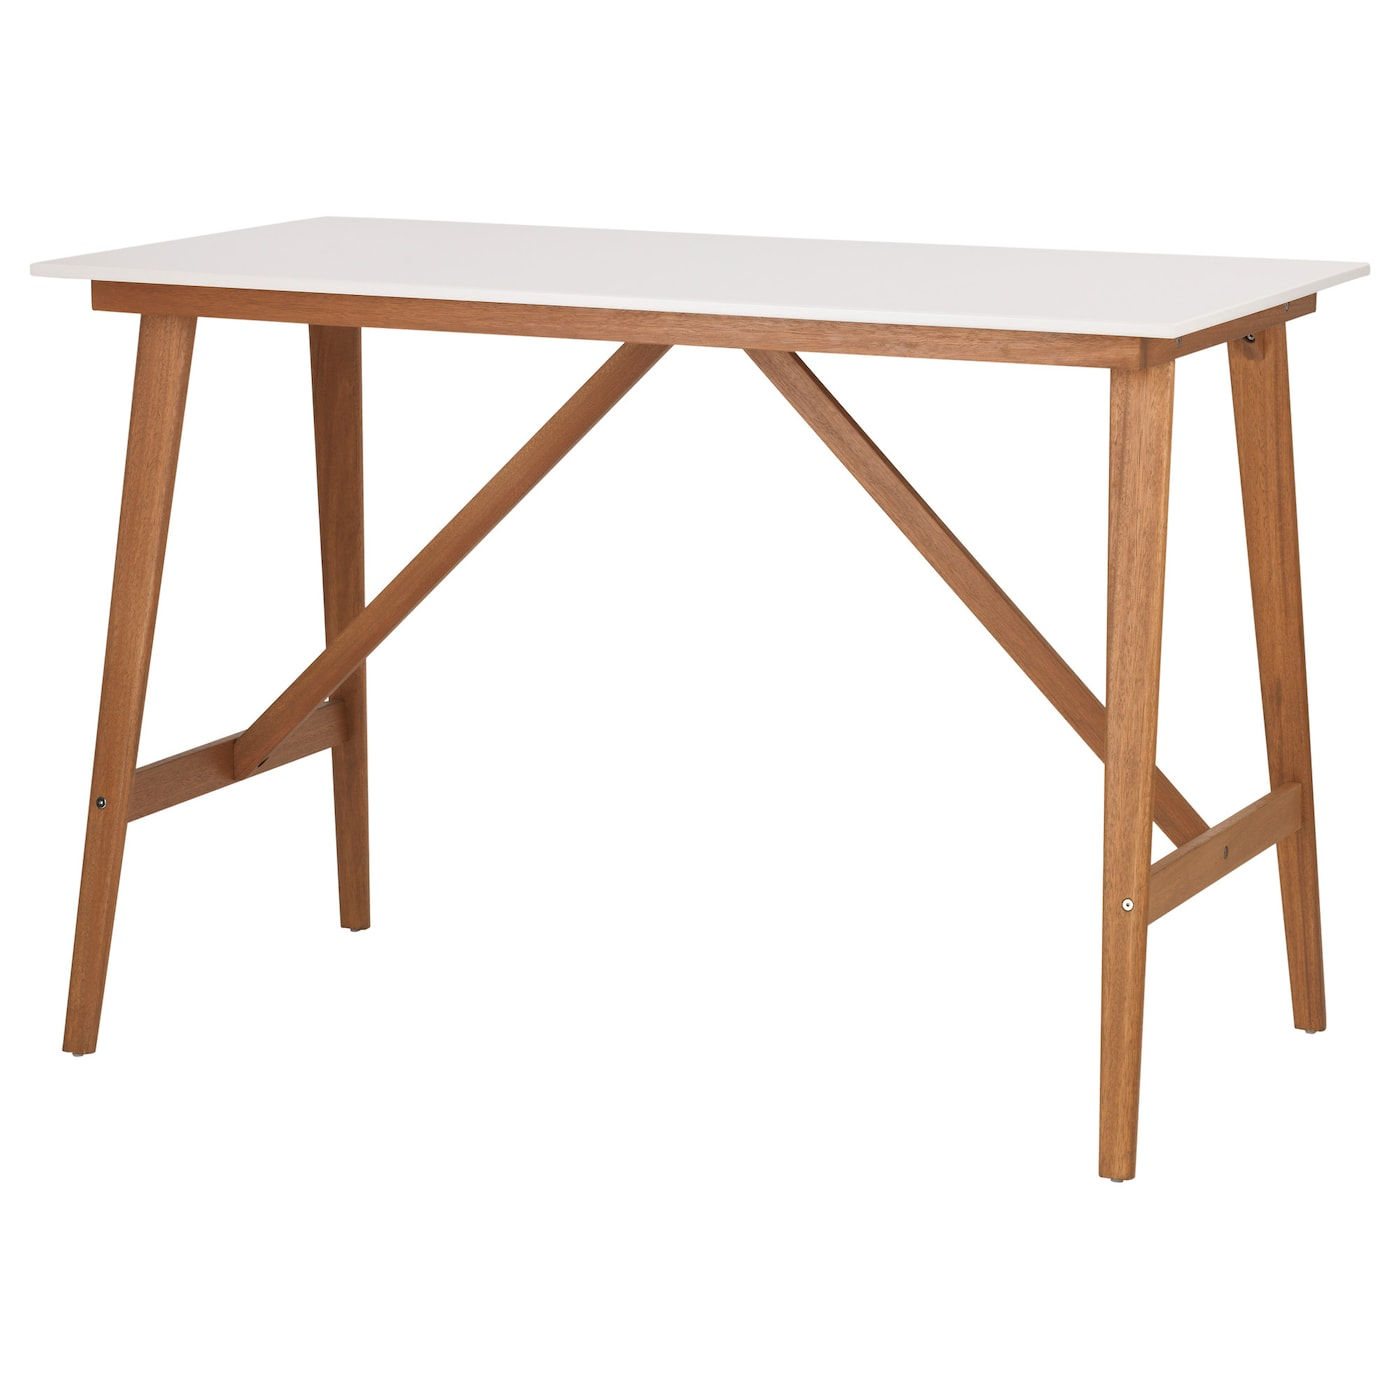 Fanbyn bar table white 140x78x95 cm ikea for Table ikea blanche